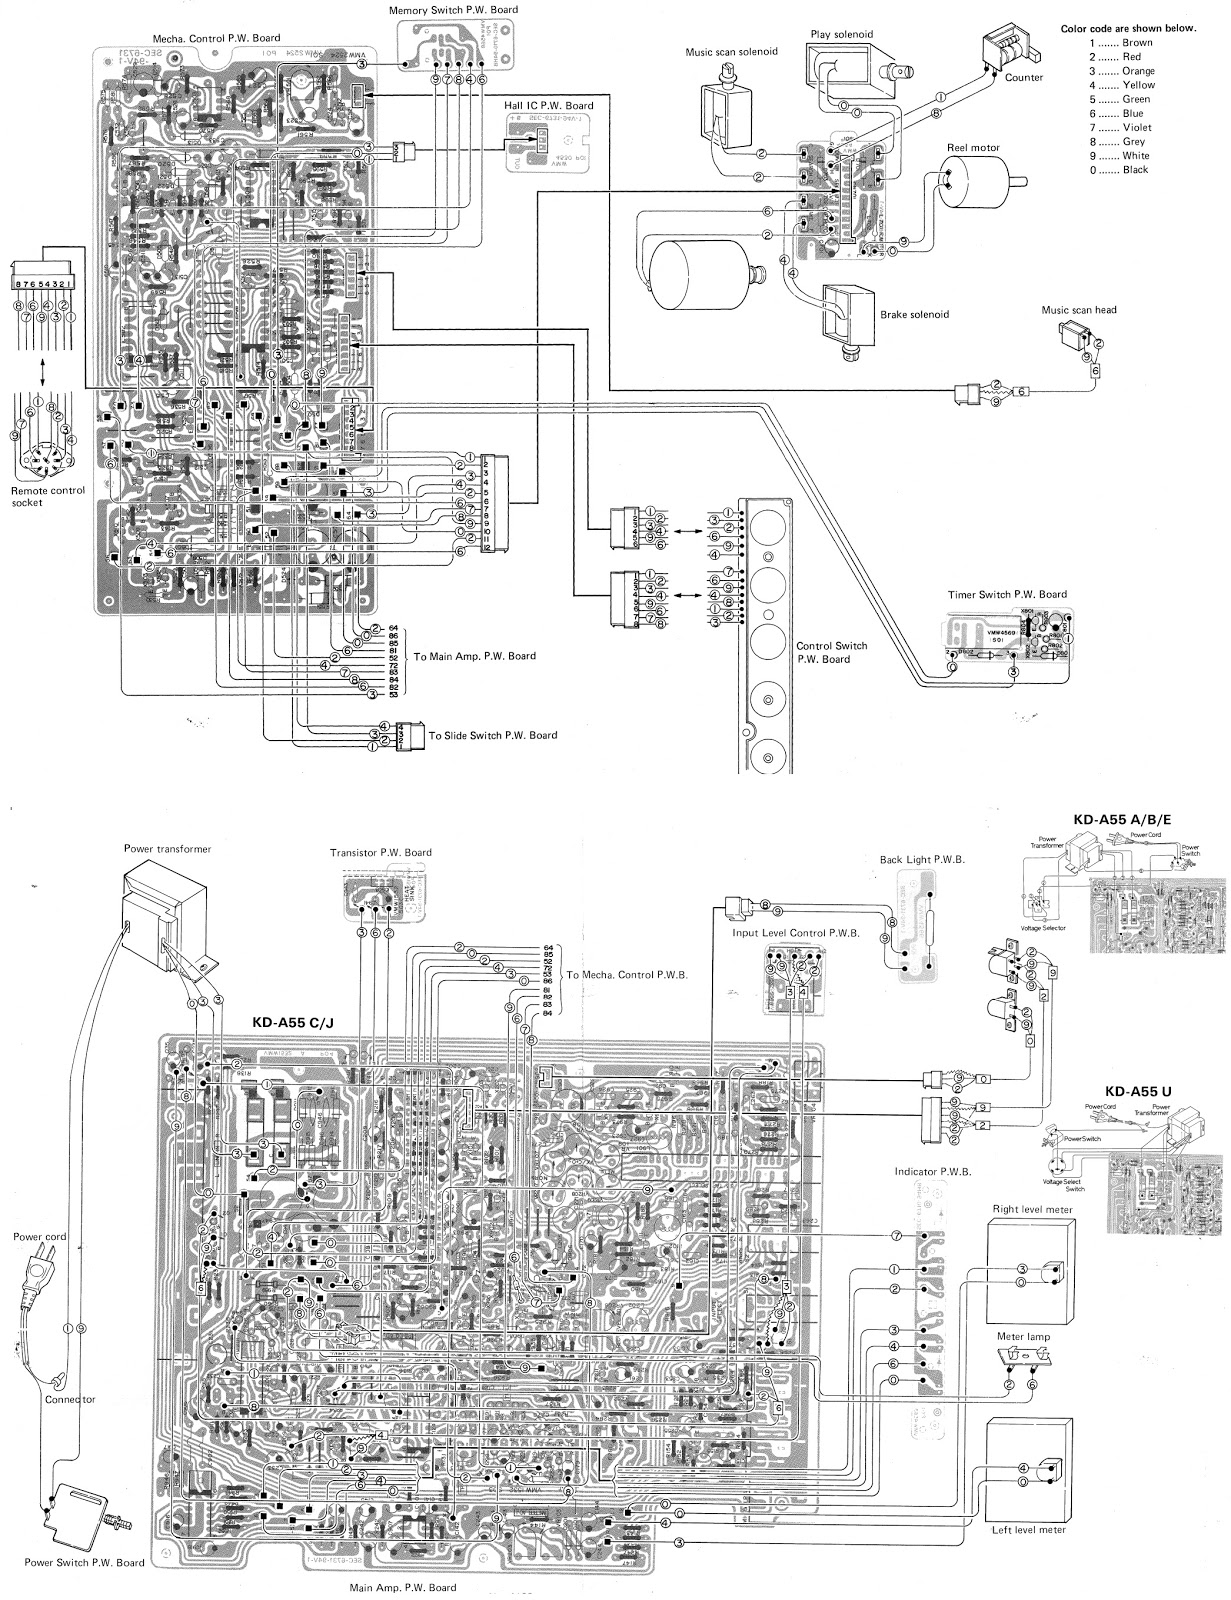 working of crt monitor with diagram basketball court label toshiba tv schematics get free image about